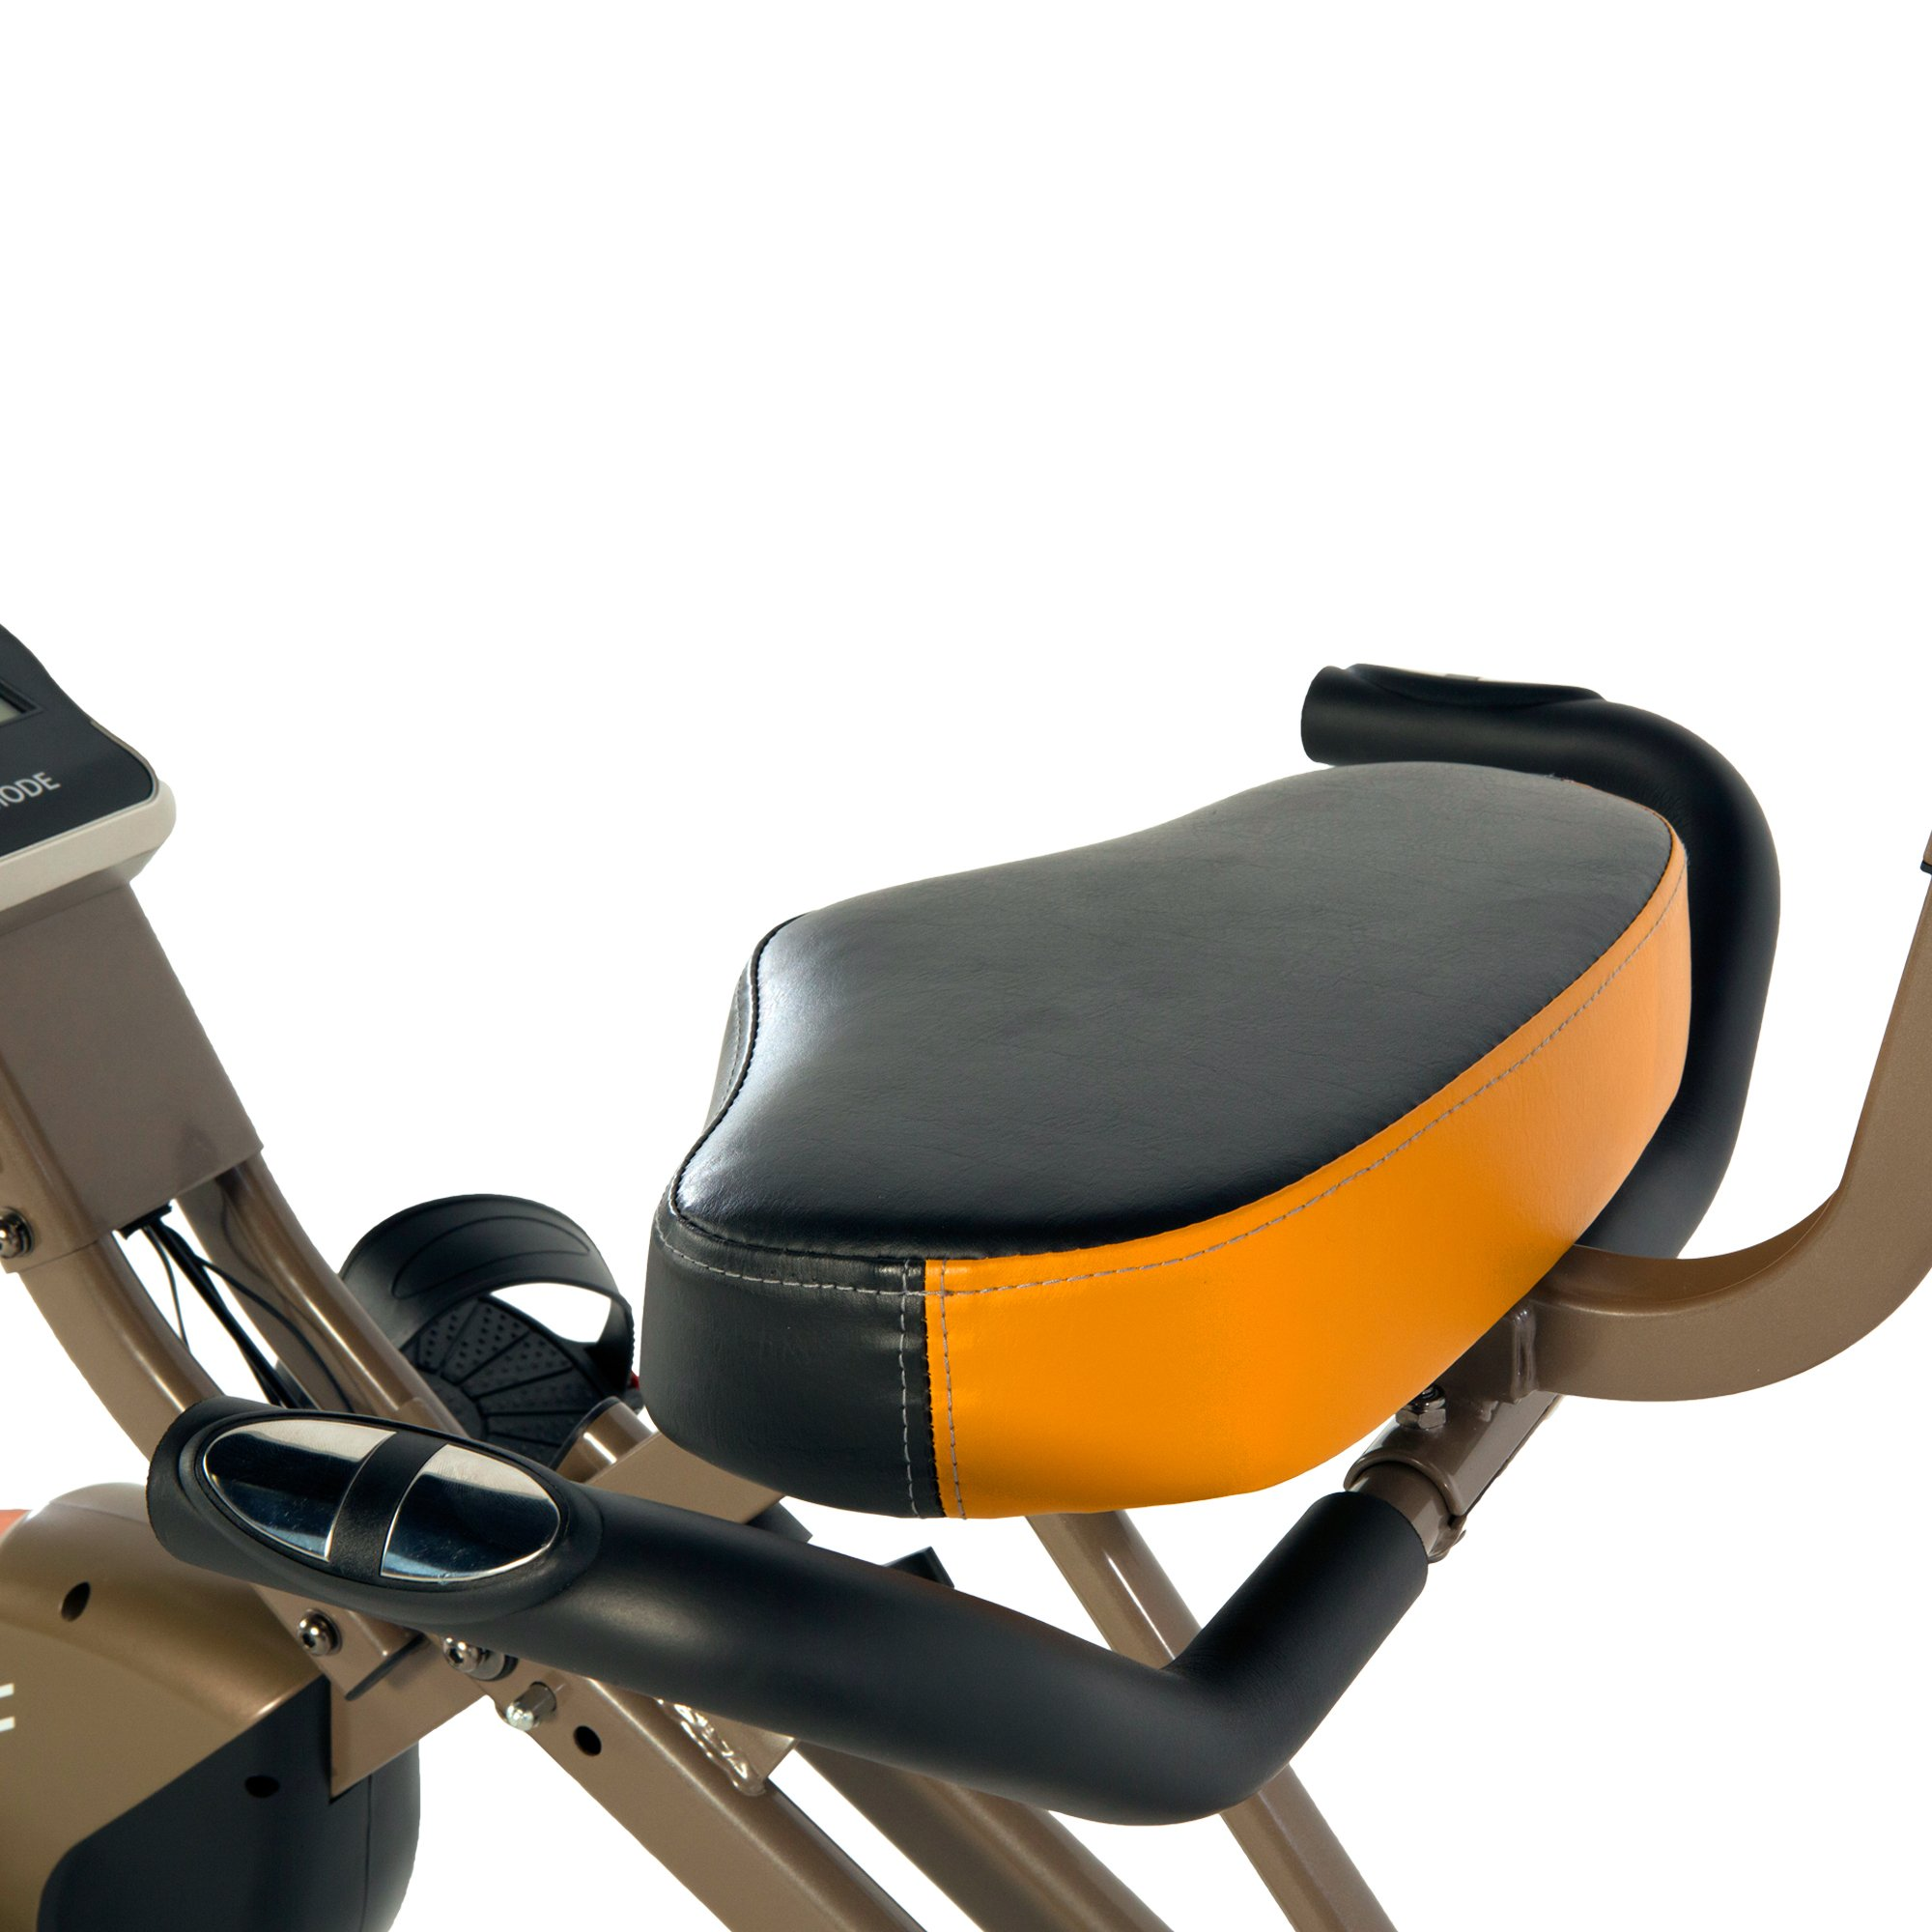 Exerpeutic Gold 525XLR Folding Recumbent Exercise Bike, 400 lbs by Exerpeutic (Image #4)